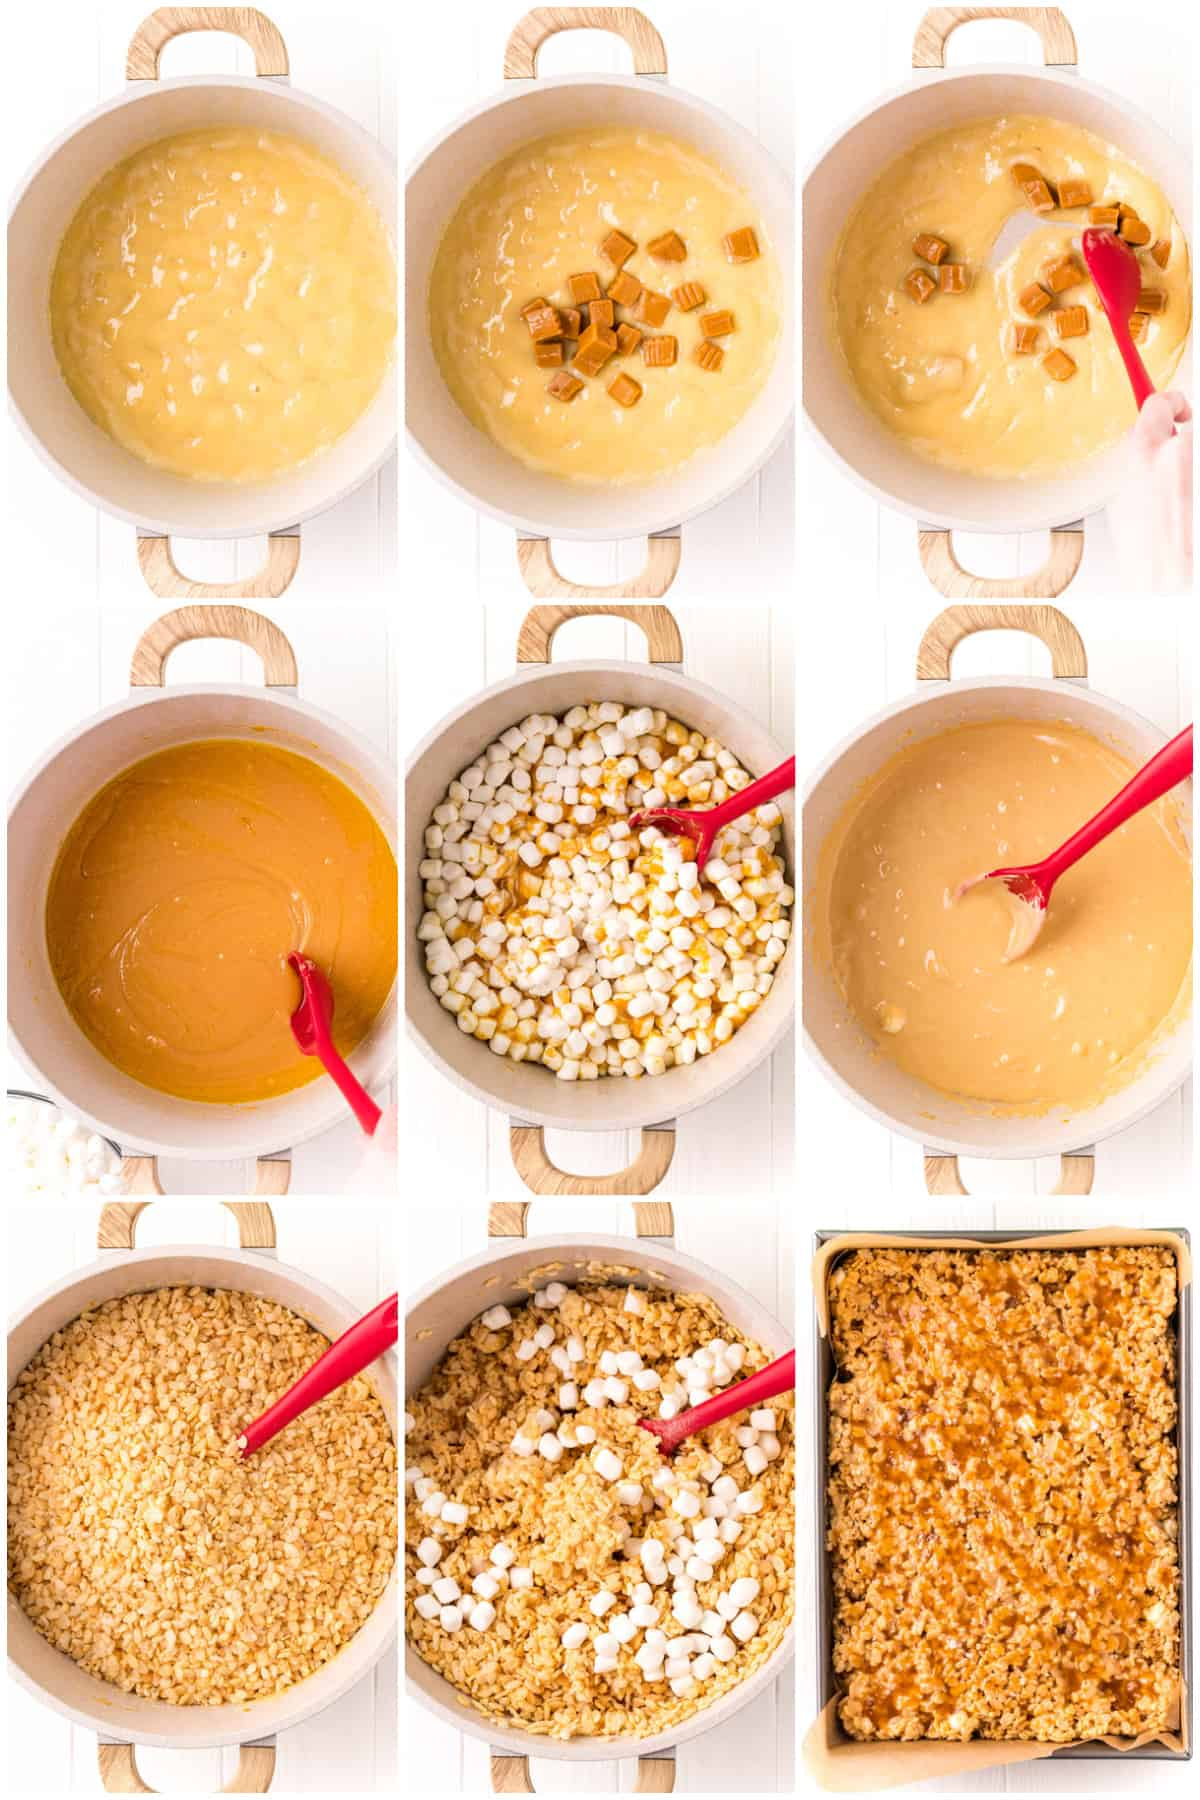 Step by step photos on how to make Salted Caramel Rice Krispie Treats